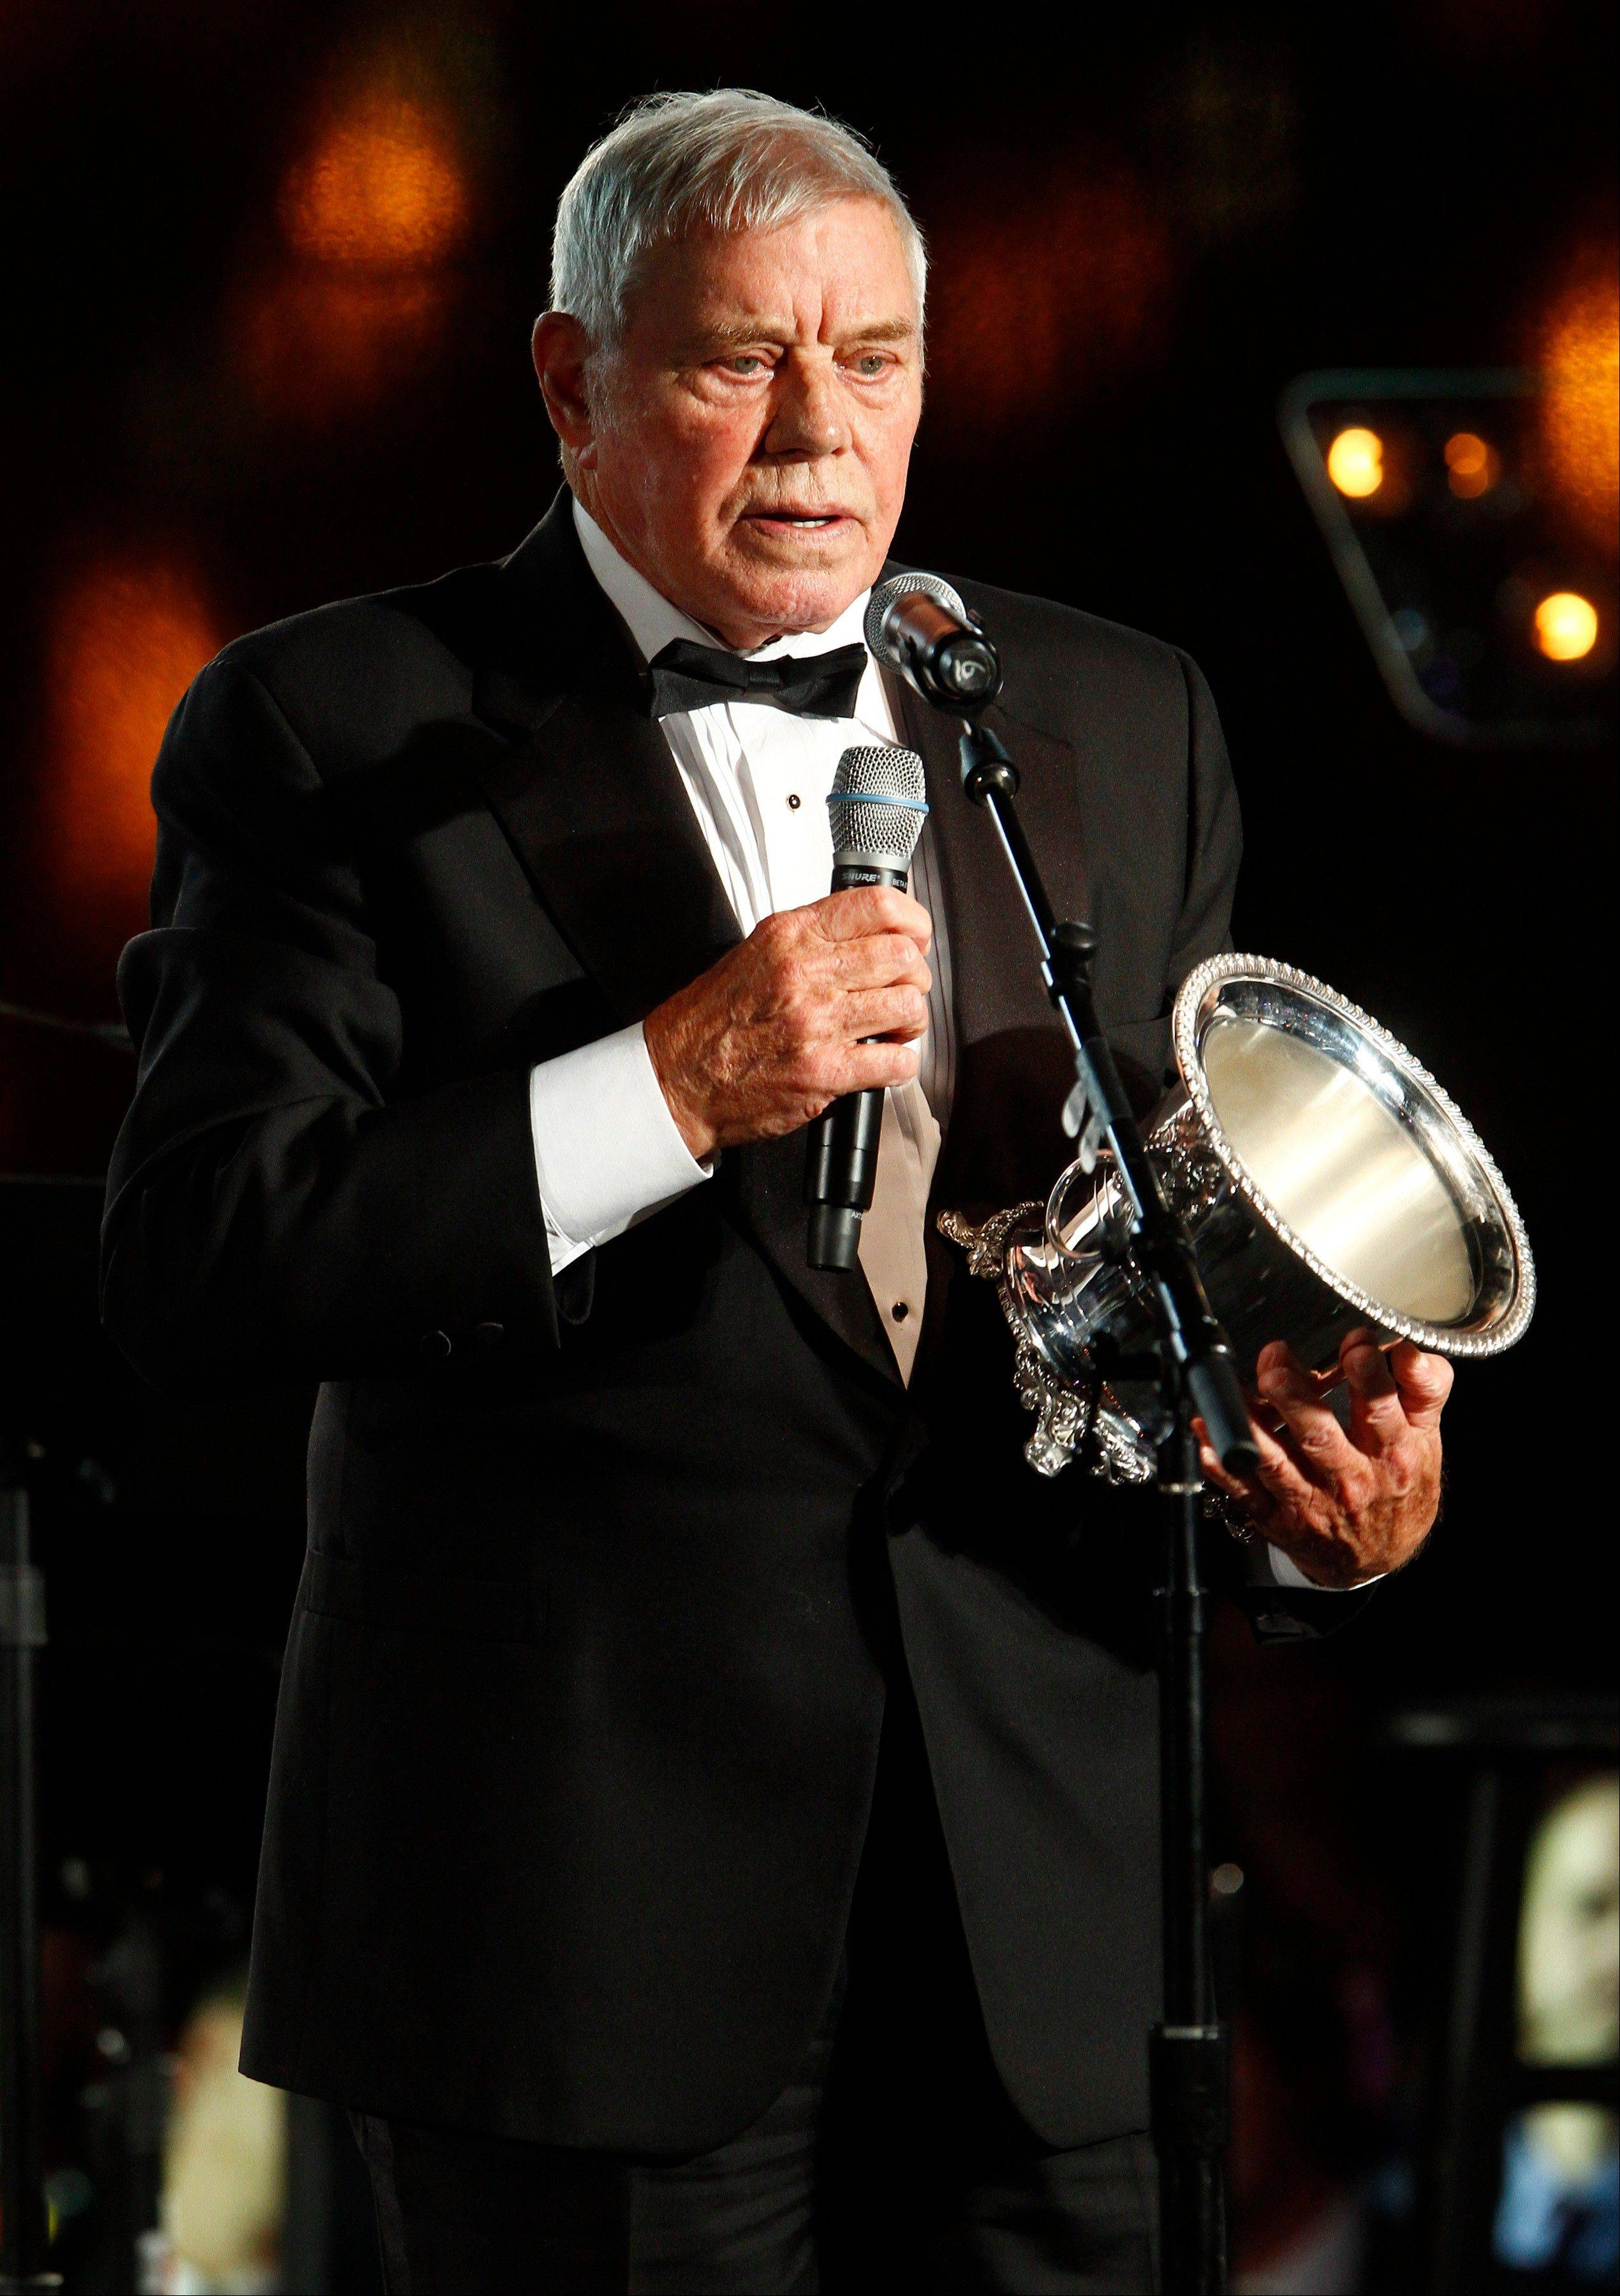 Tom T. Hall accepts the Icon Award at the 60th Annual BMI Country Awards on Tuesday in Nashville.